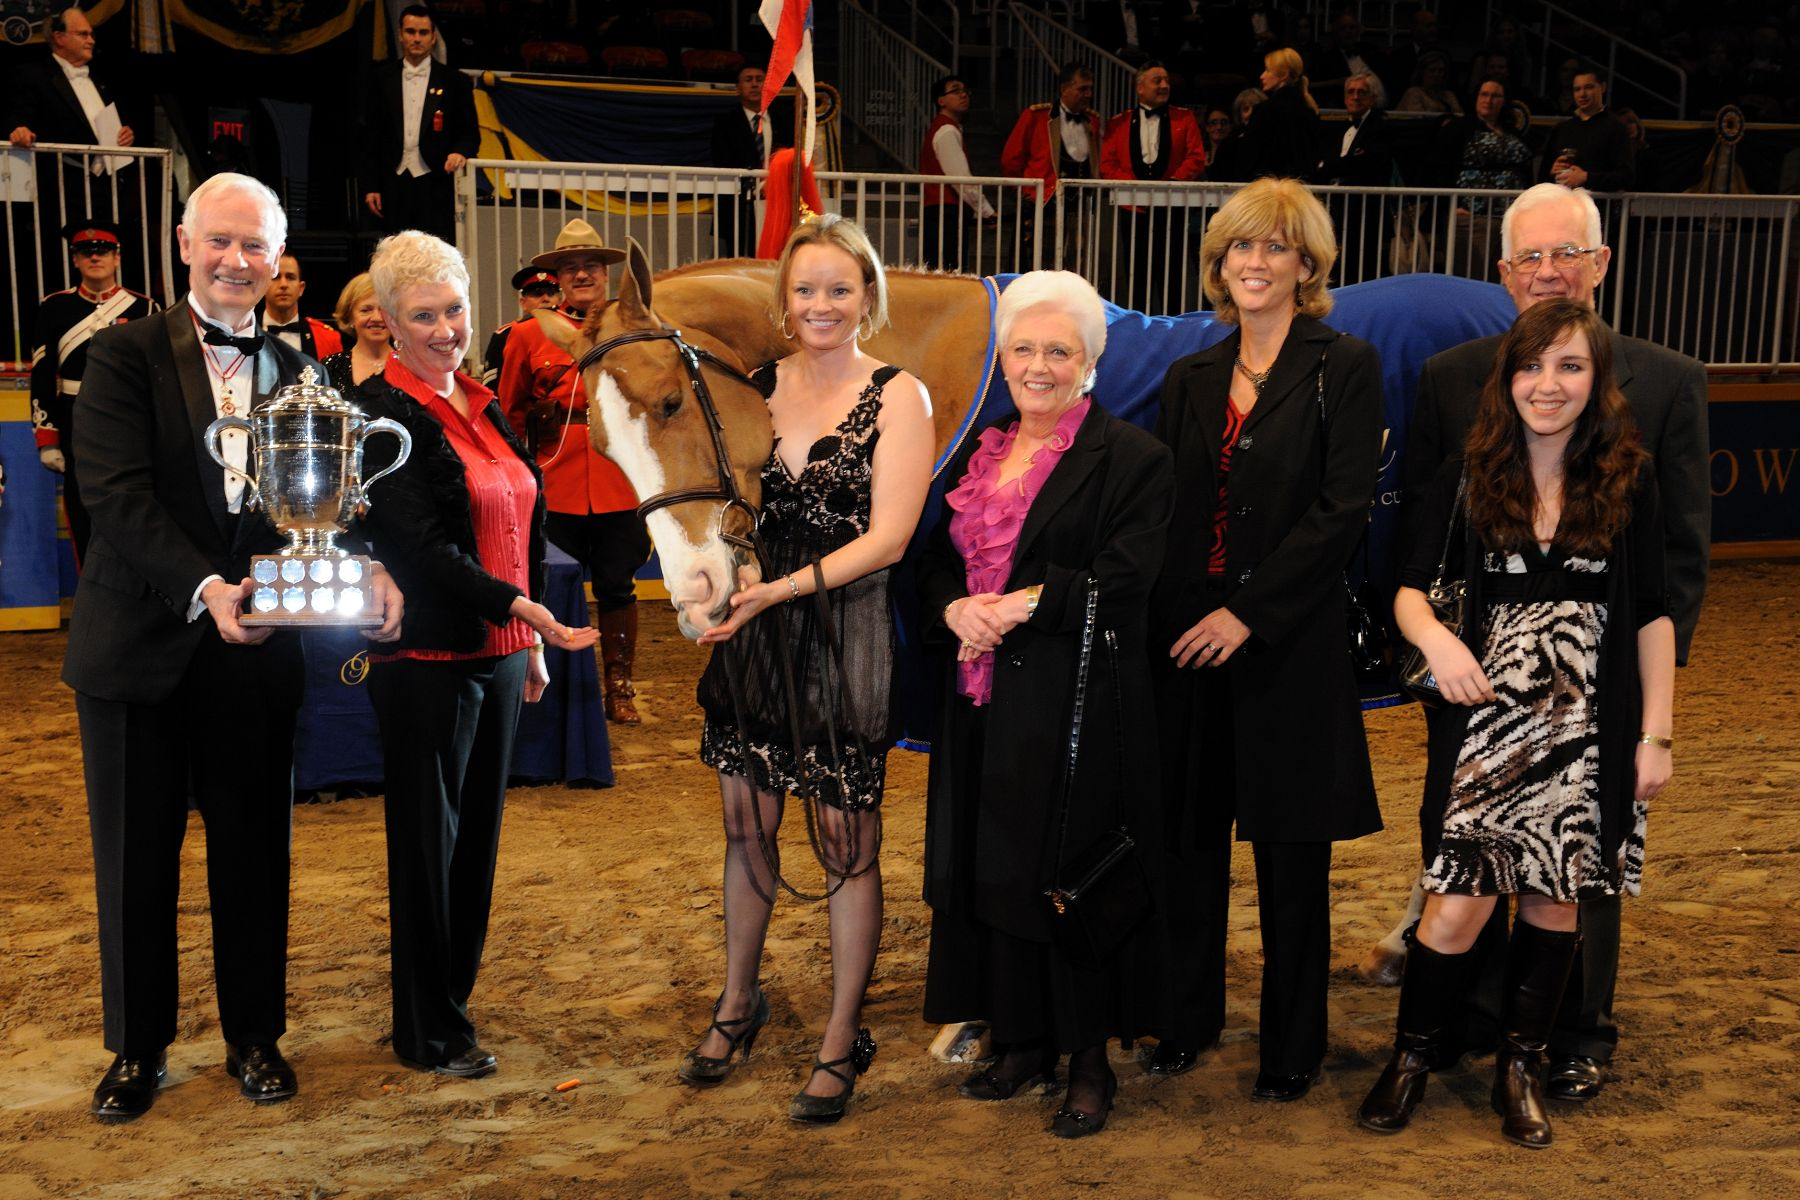 The Governor General recognized excellence in the sport horse breeding classes by awarding the Governor General's cup to this year's winner. This annual tradition began in 1922 when Canada's premier indoor horse show, the Royal Horse Show, first opened. Entries in the Governor General's Cup class are judged as to their suitability at becoming a sport horse assessing their potential for excellence in the Hunter, Jumper, Dressage or Eventing disciplines.